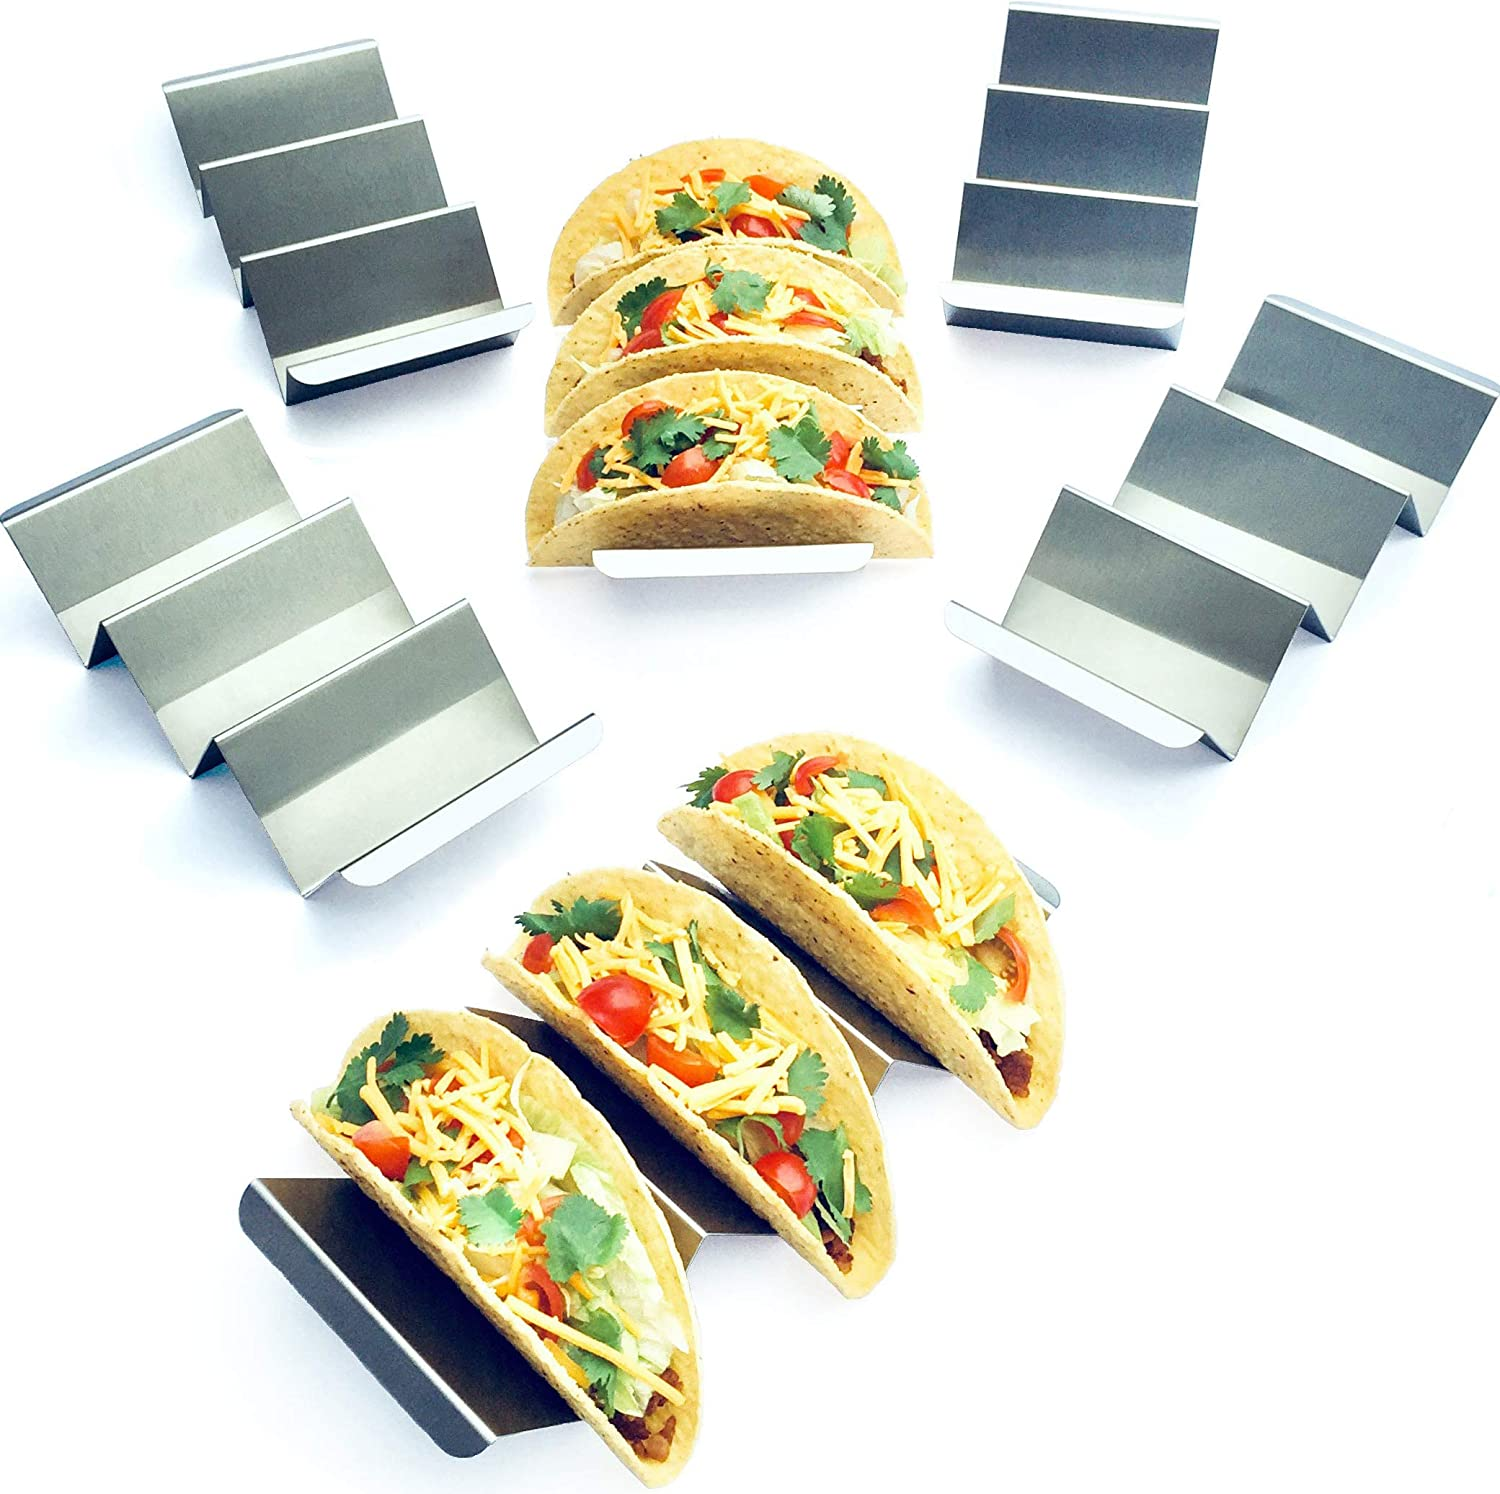 6 Pack Jumbo Taco Holder Stands - Stainless Steel Taco Racks - Metal Taco Trays - Restaurant Grade Stainless Steel for Fuller Sized Tacos - Oven and Dishwasher Safe - Soft and Hard Shell Taco Holders